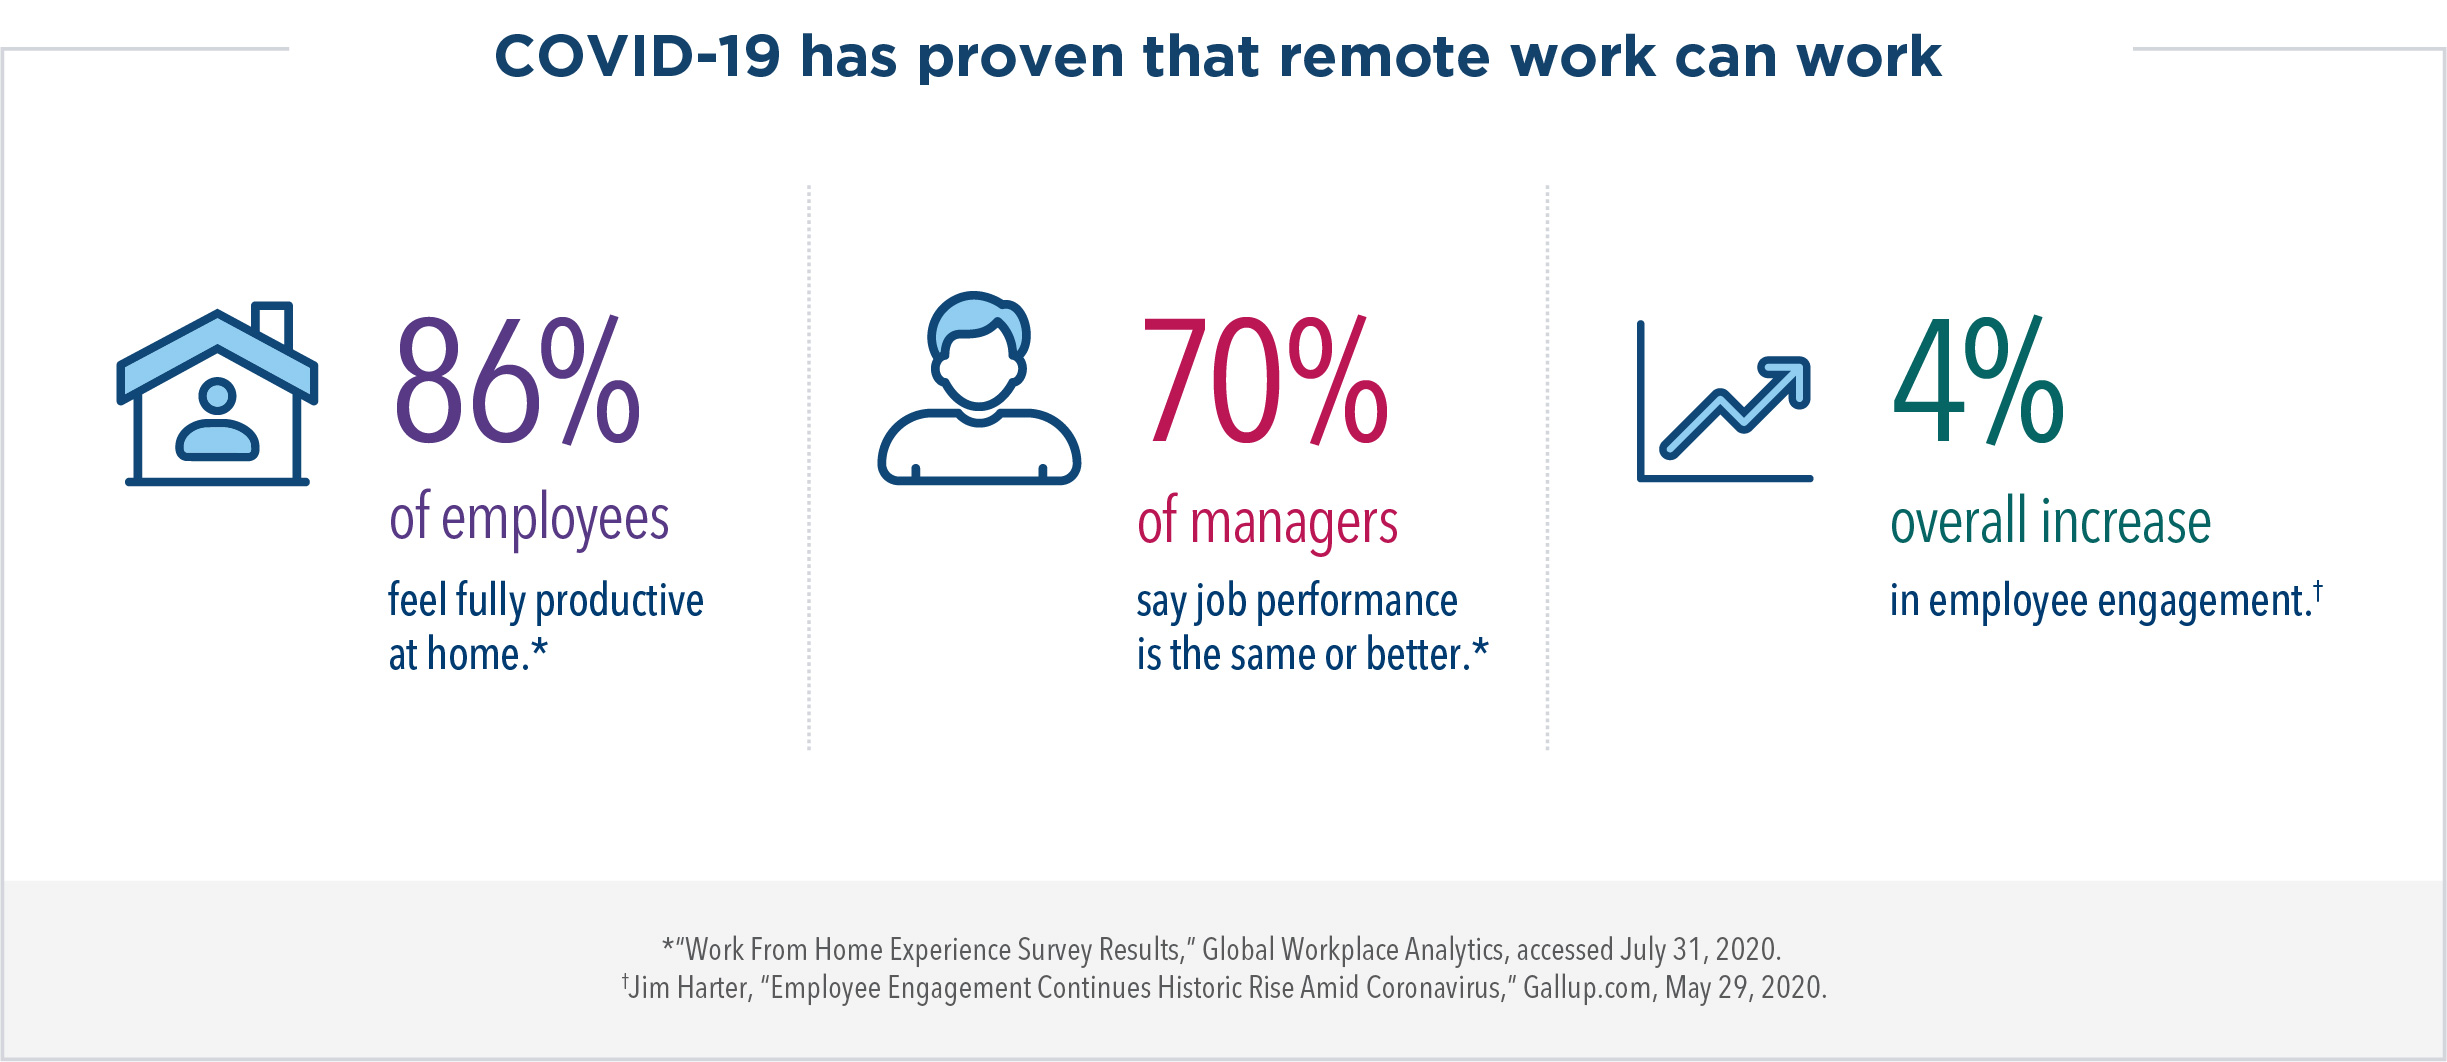 COVID-19 has proven that remote work can work. 86% of employees feel fully productive at home. 70% of managers say job performance is the same or better. There has been a 4% overall increase in employee engagement.